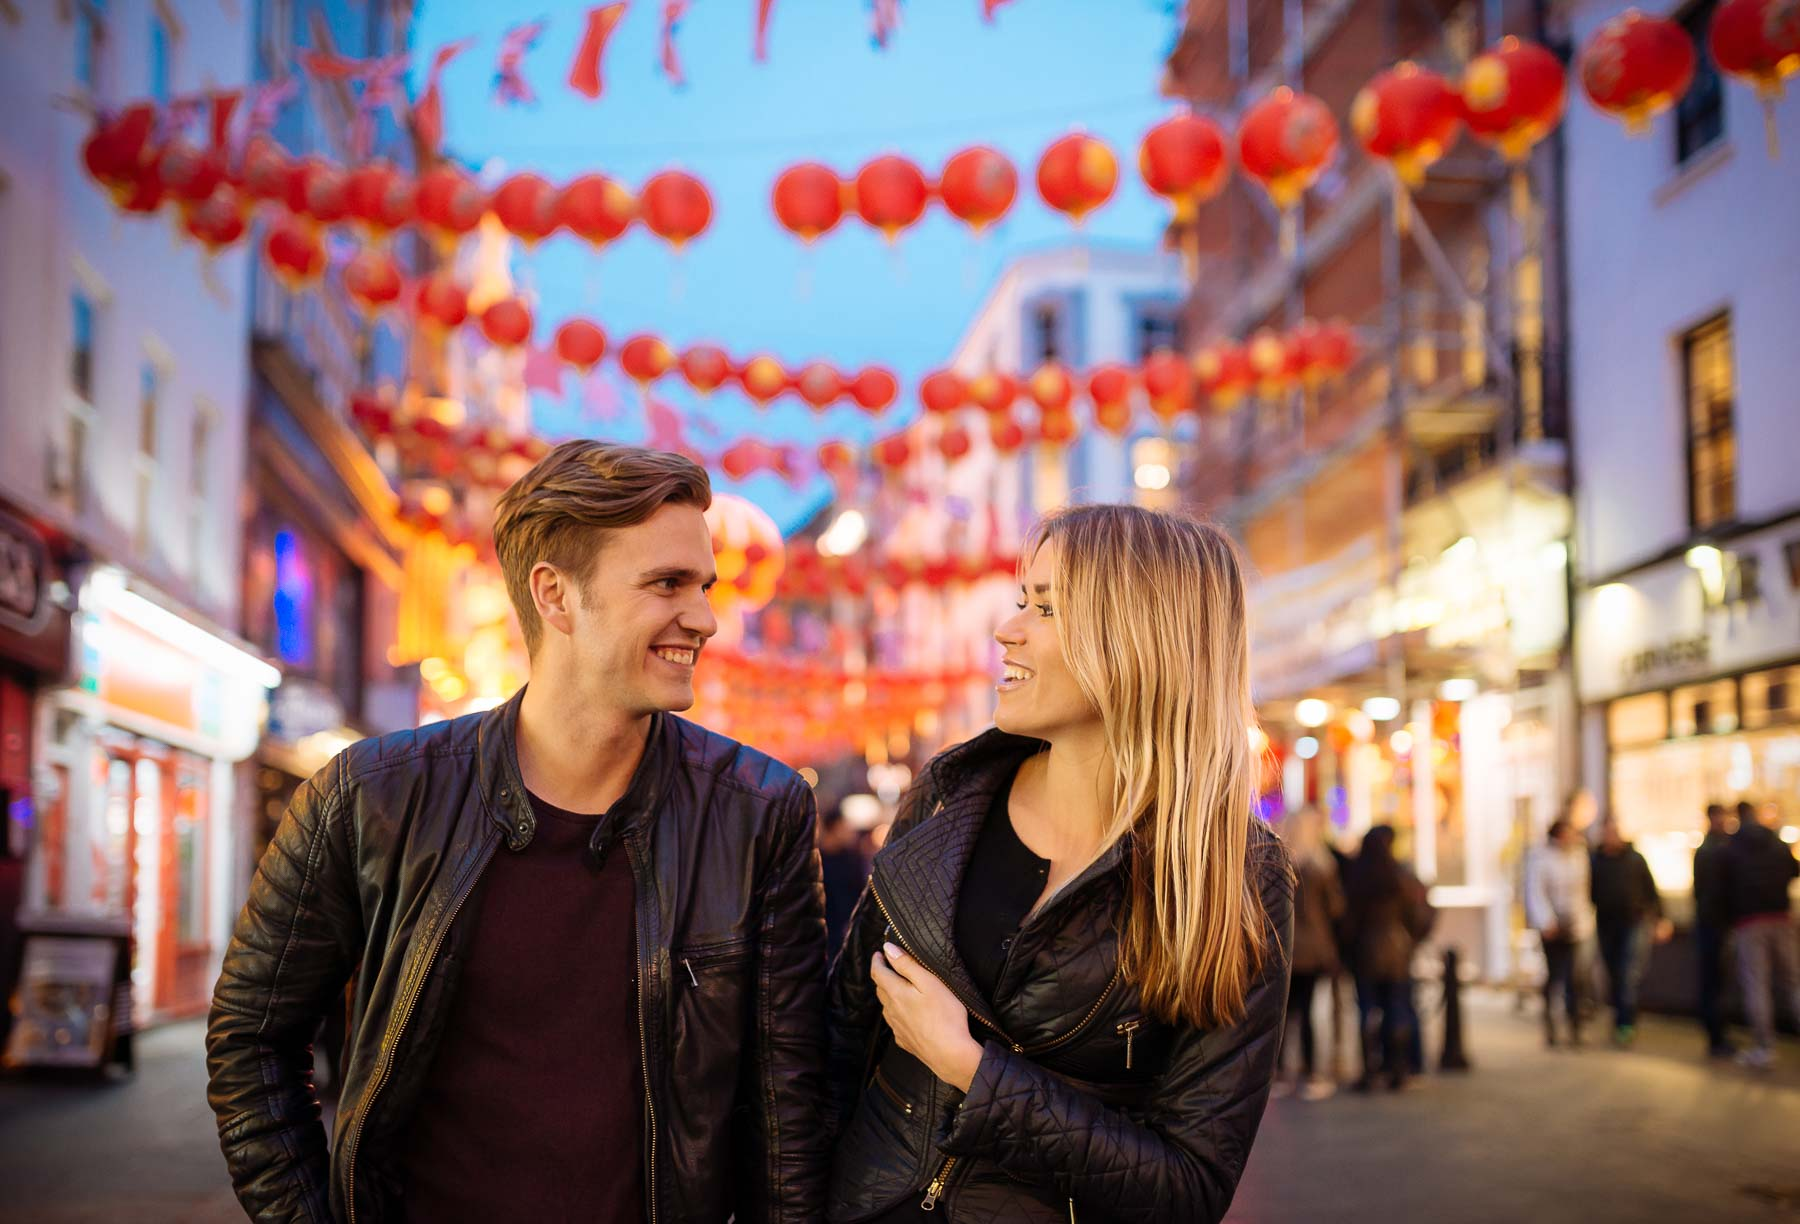 couple-soho-chinatown-together-romantic-evening-twilight-london-lifestyle-19